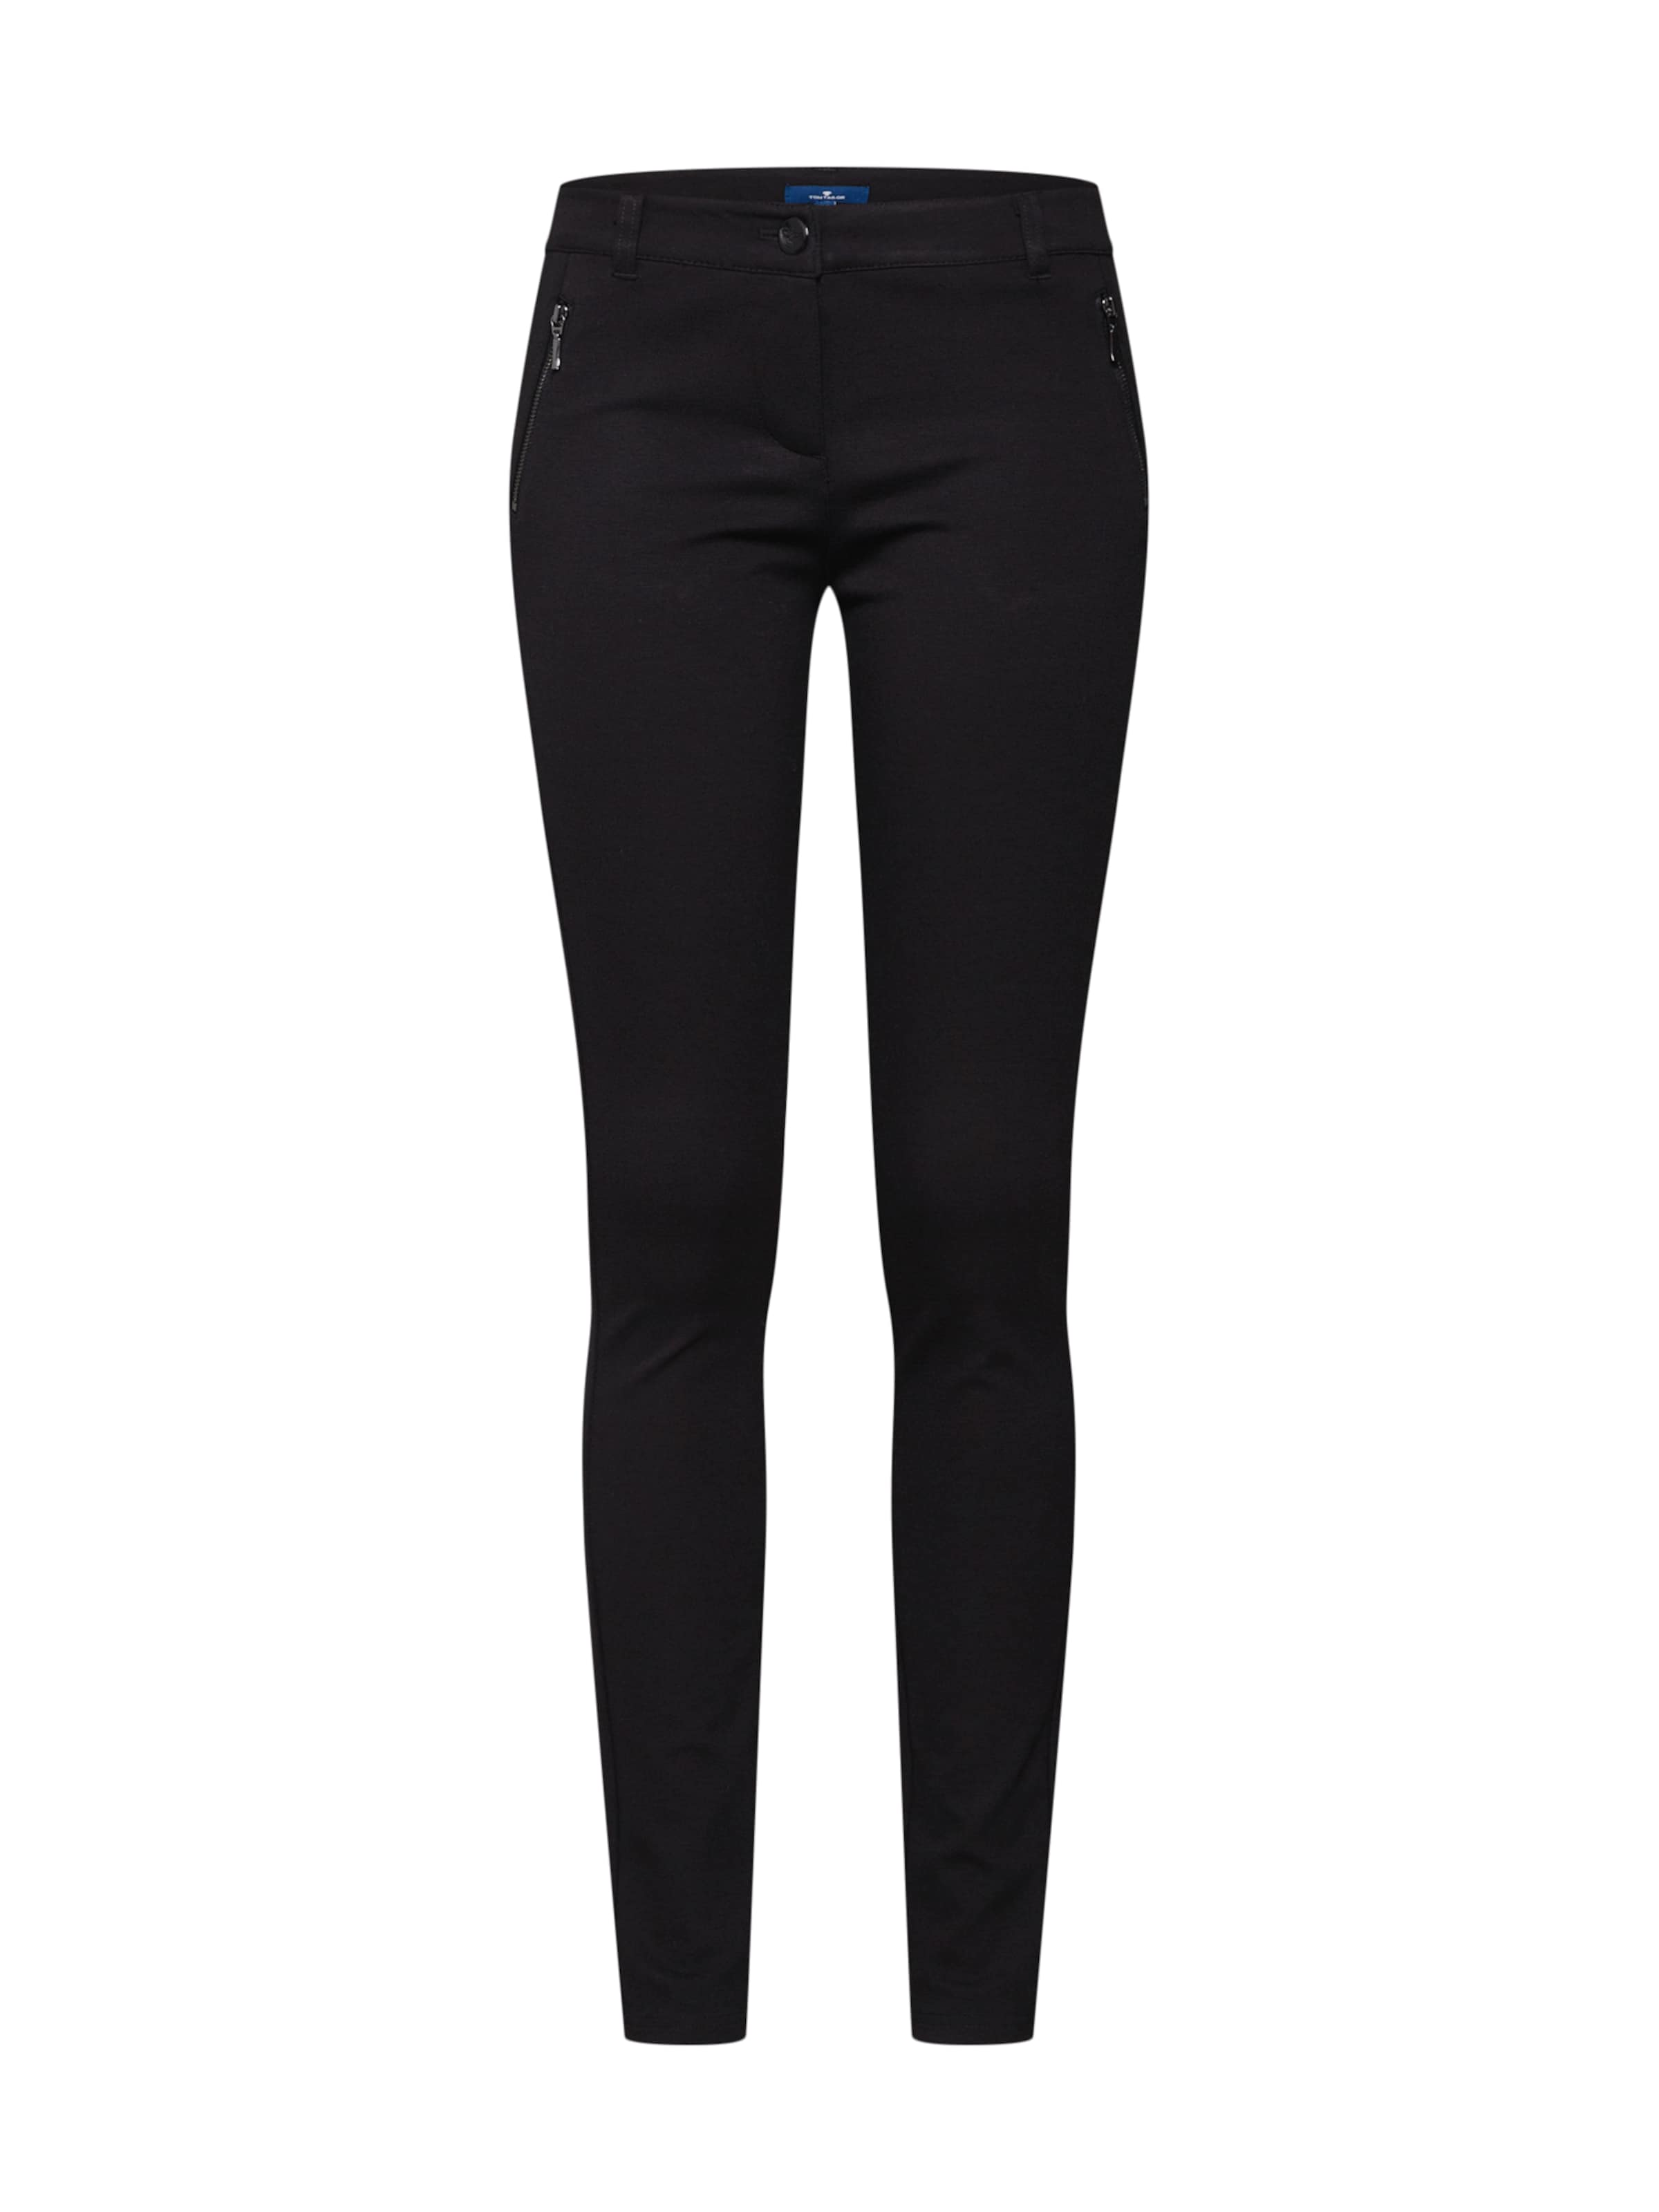 Tom Noir Treggings' En Tailor Pantalon Ponte 'zipped dhCtrxBsQo